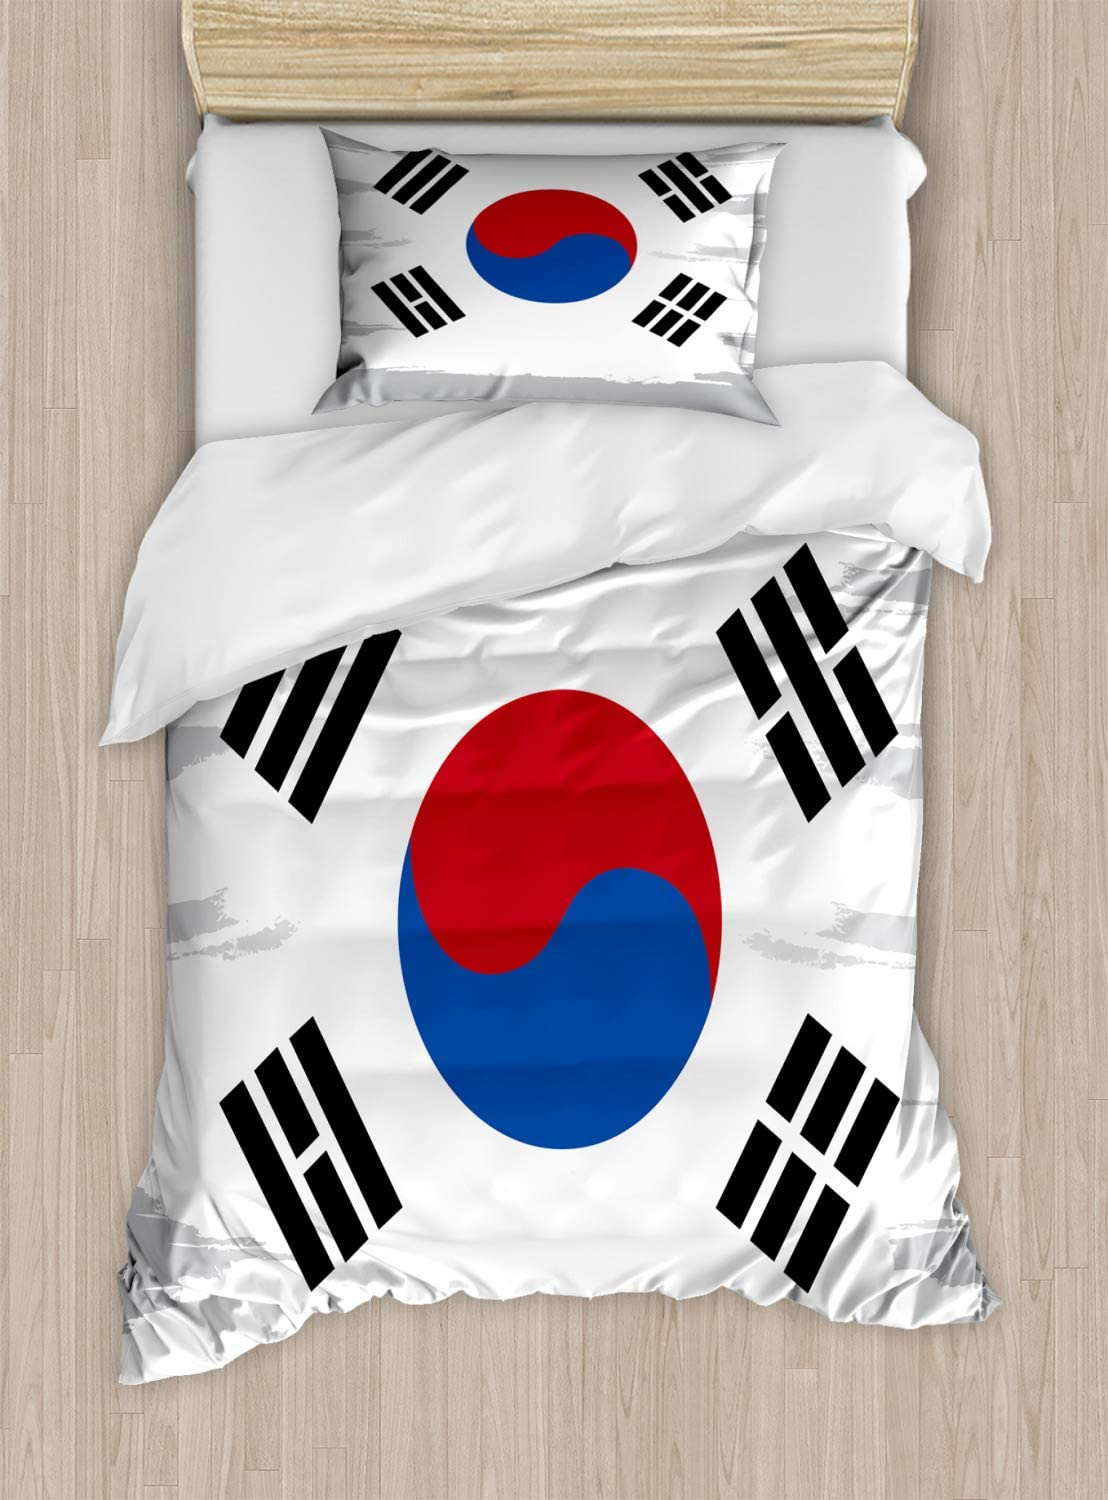 Ambesonne Korean Flag Duvet Cover Set, Grunge Brush Paint On Backdrop Effect, Decorative 2 Piece Bedding Set With 1 Pillow Sham, Twin Size, Pale Taupe Dark Pink Cobalt Blue Charcoal Grey